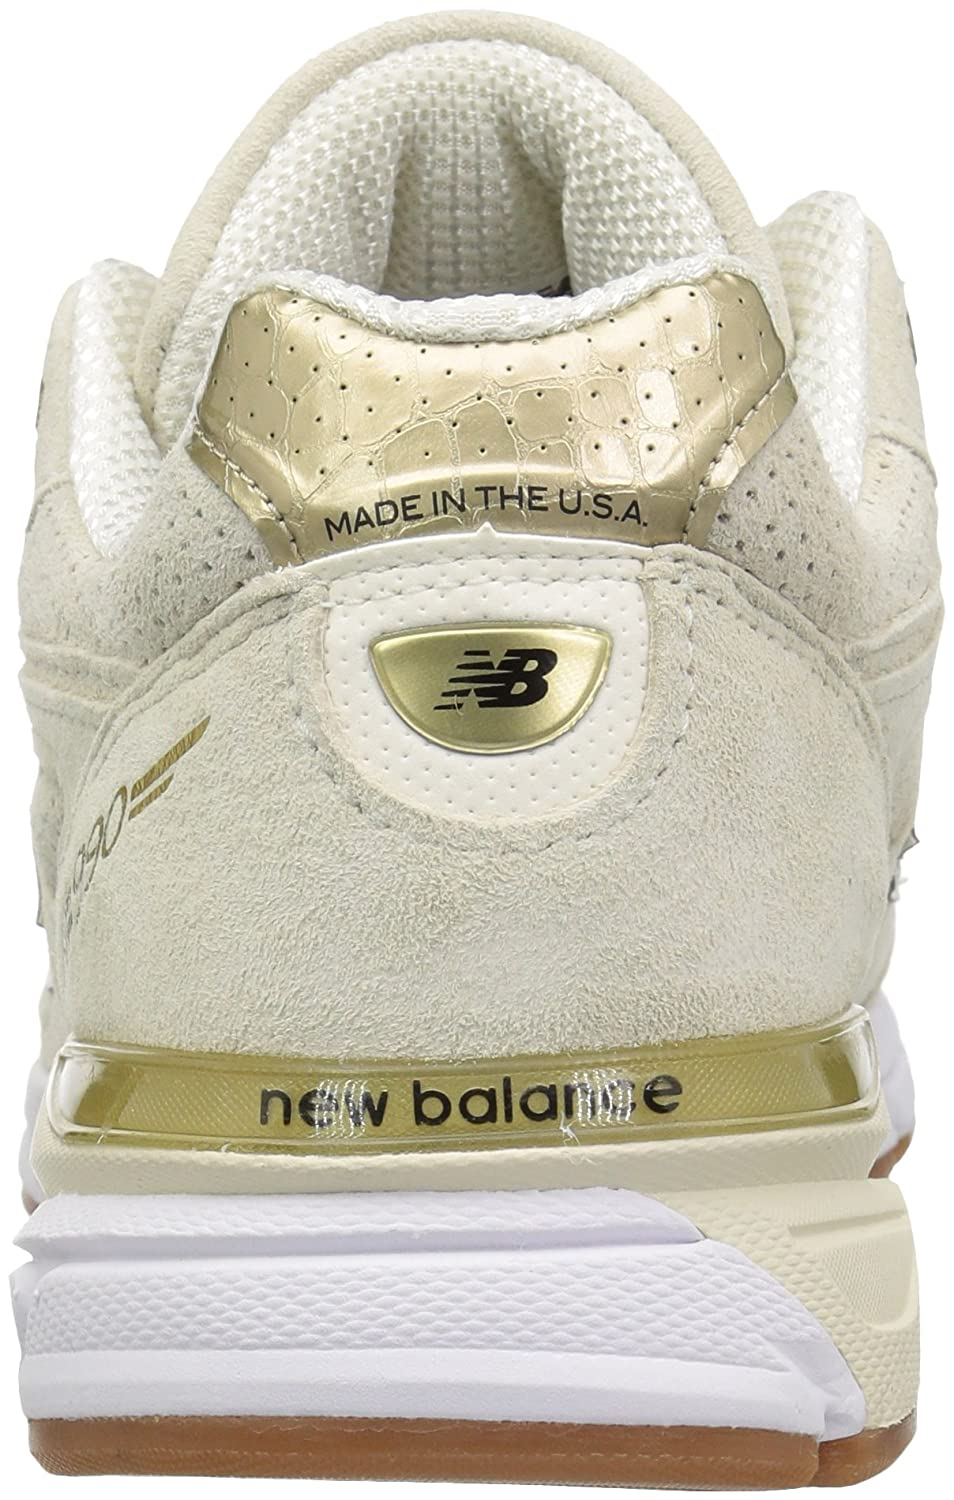 New-Balance-990-990v4-Classicc-Retro-Fashion-Sneaker-Made-in-USA thumbnail 4